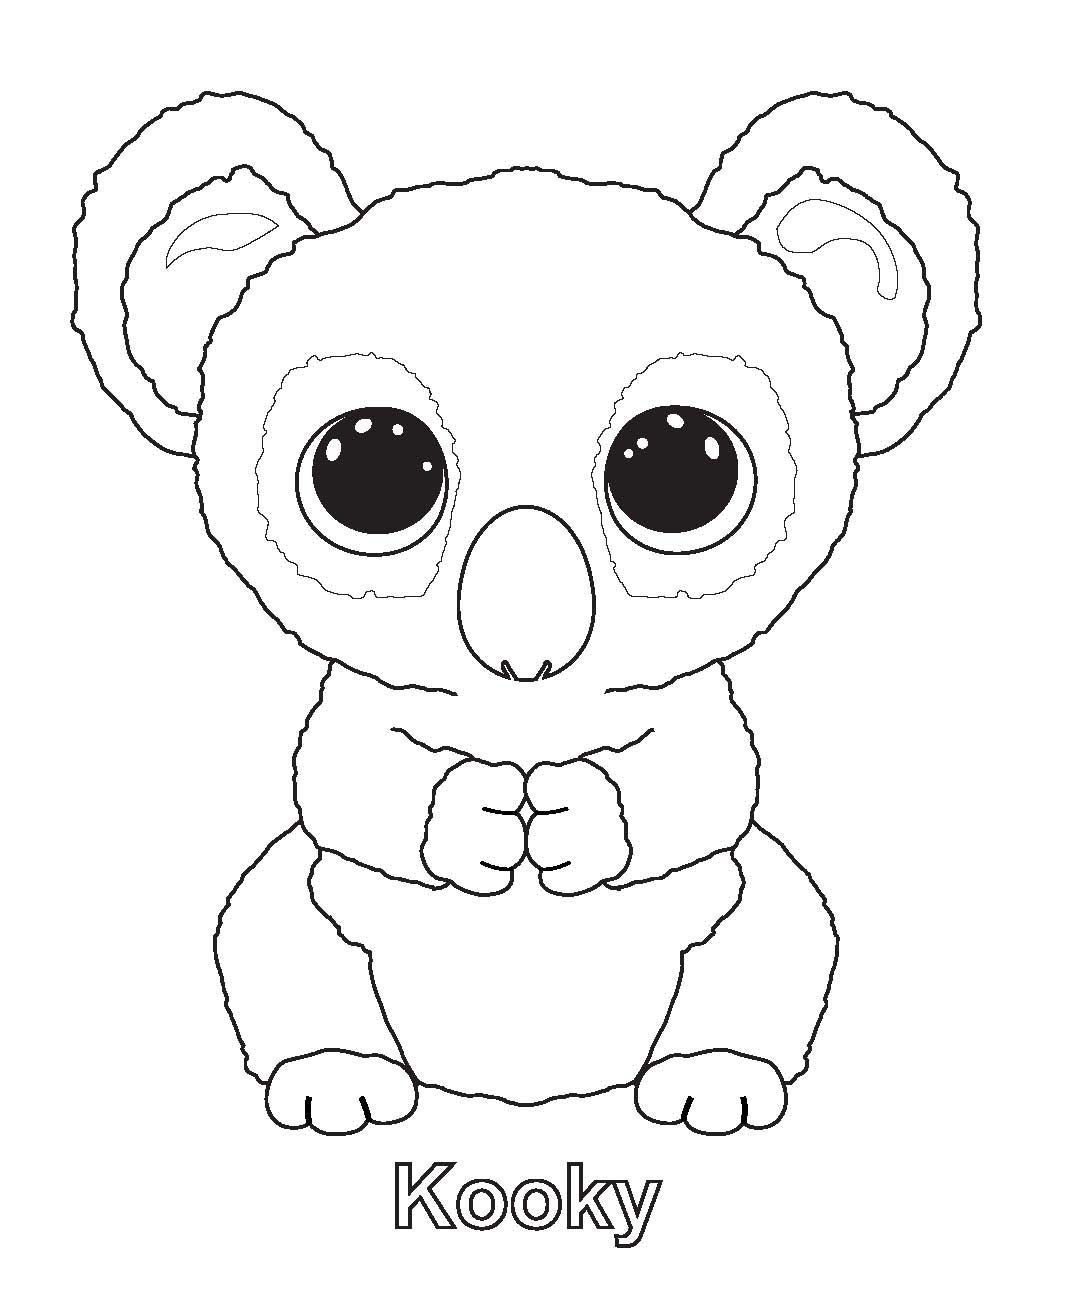 Ty Beanie Boo Coloring Pages Download And Print For Free | Boos - Free Printable Beanie Boo Coloring Pages